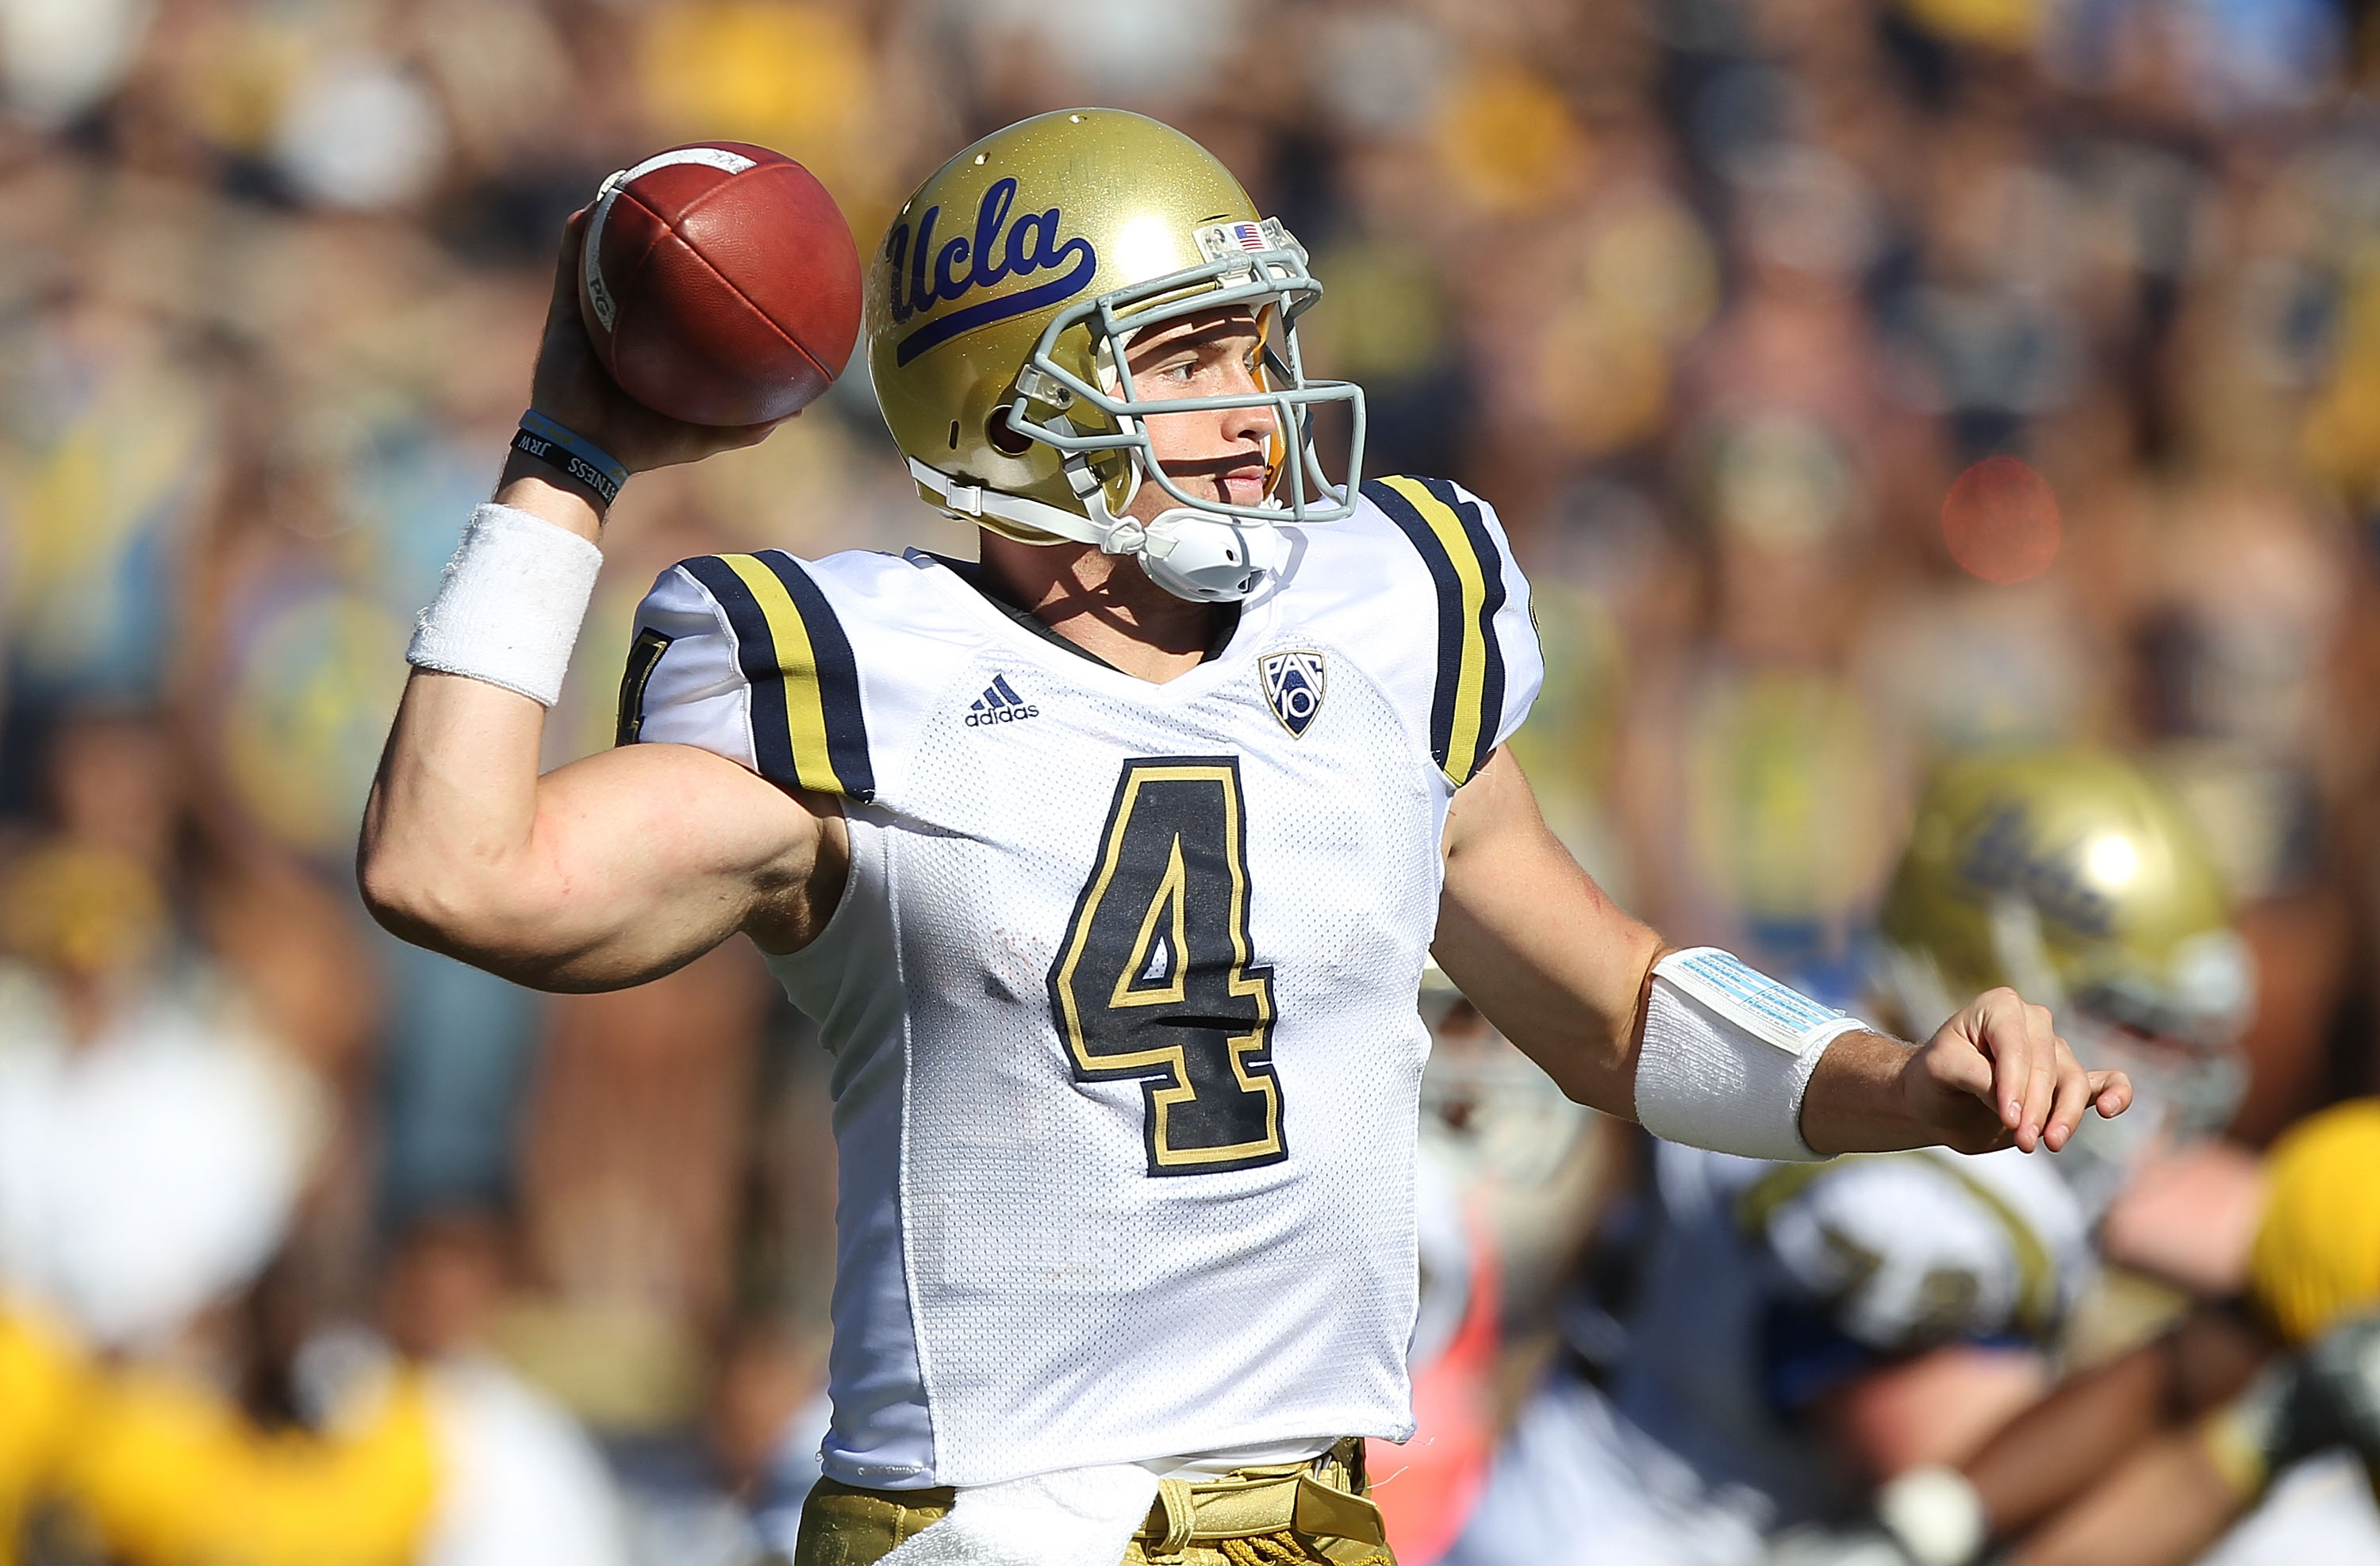 BERKELEY, CA - OCTOBER 09:  Kevin Price #4 of the UCLA Bruins passes against the California Golden Bears at California Memorial Stadium on October 9, 2010 in Berkeley, California.  (Photo by Jed Jacobsohn/Getty Images)